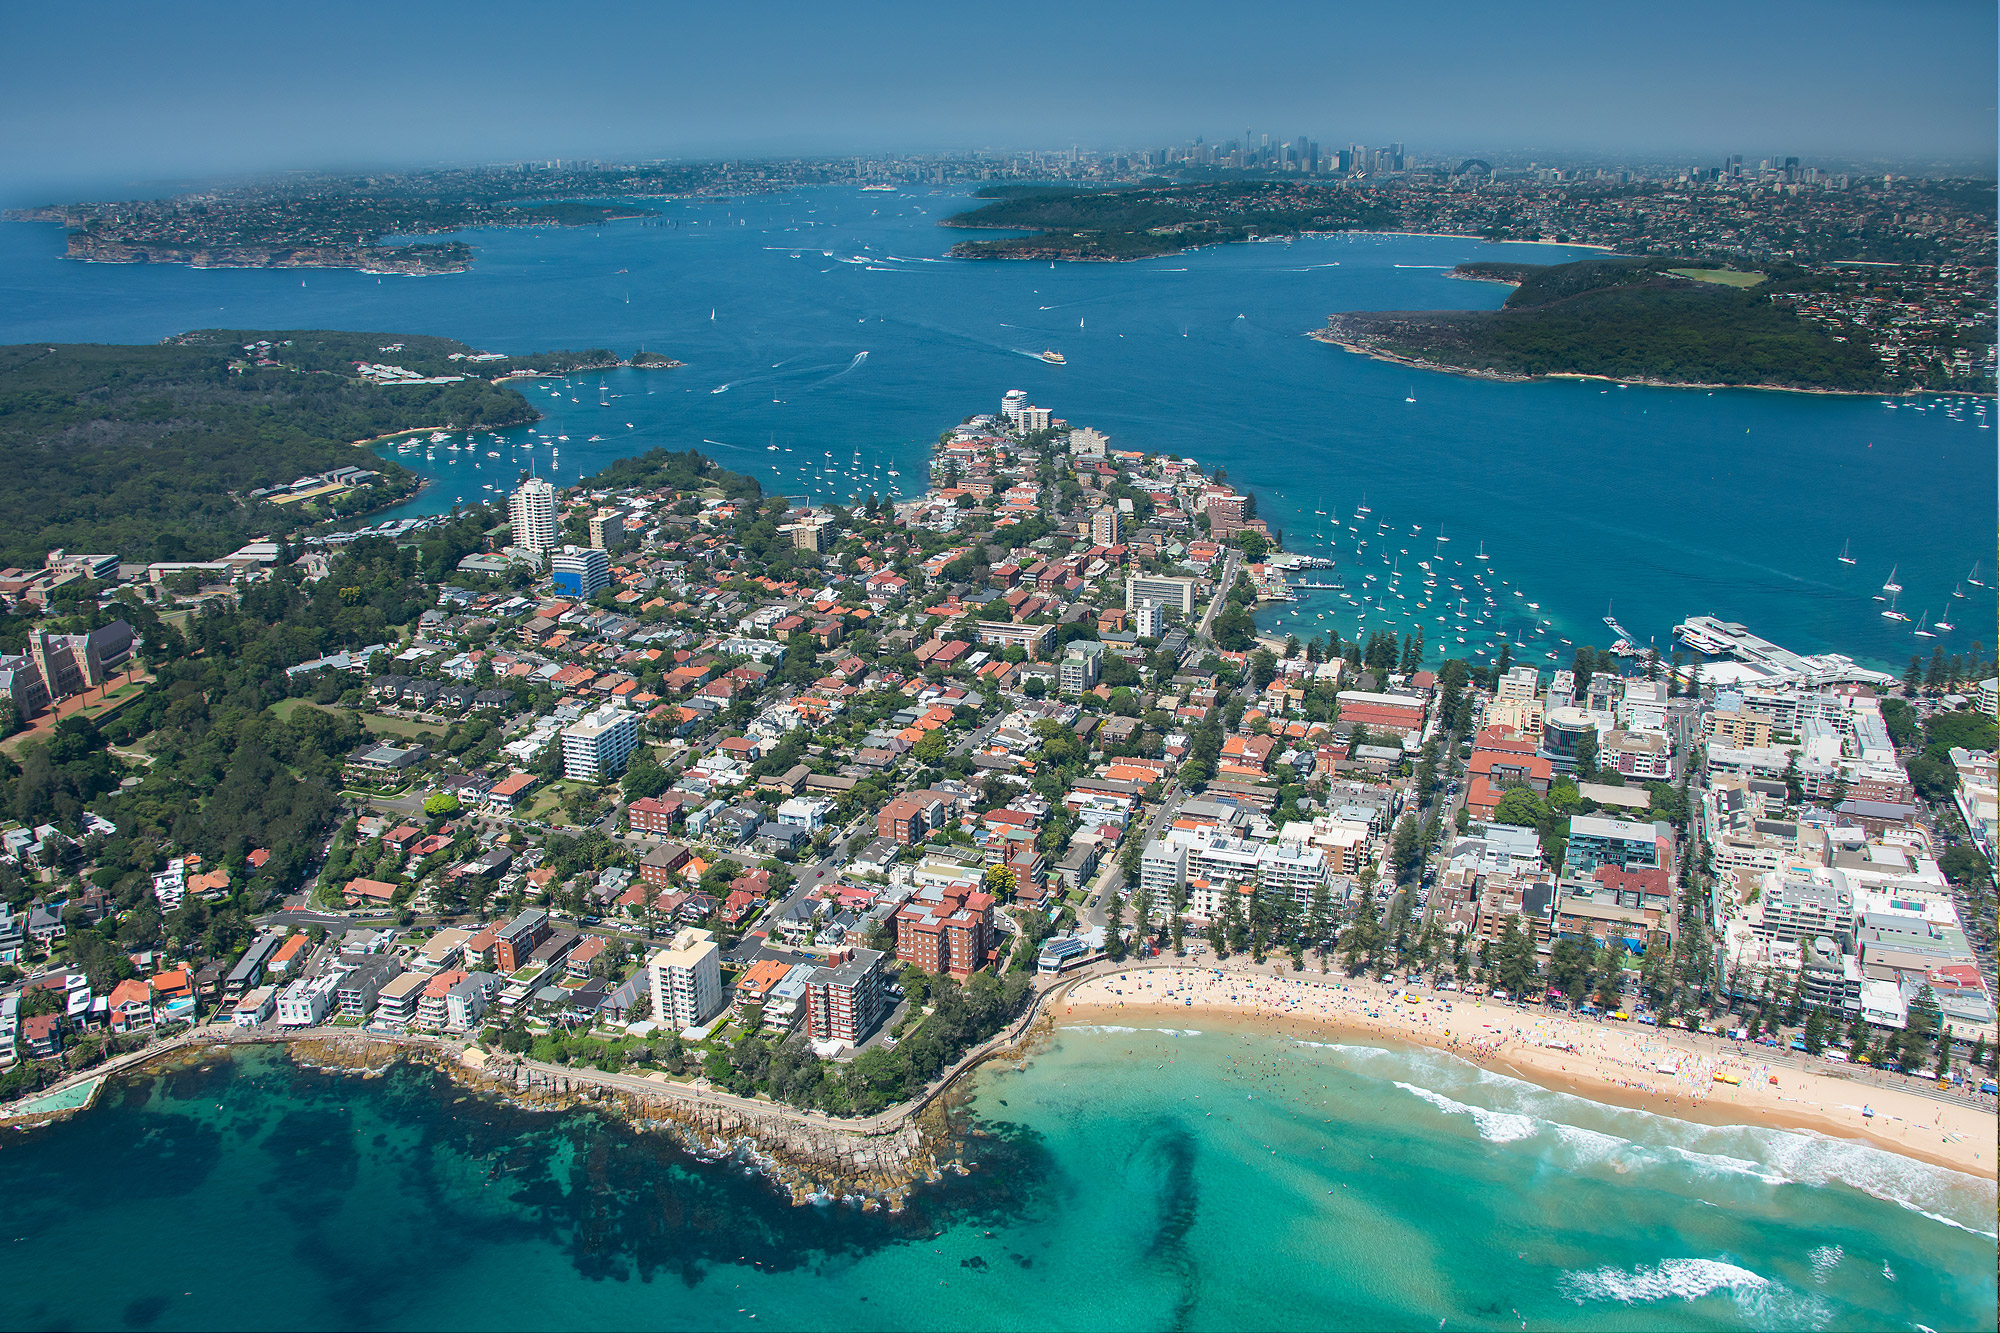 Iconic Manly Beach